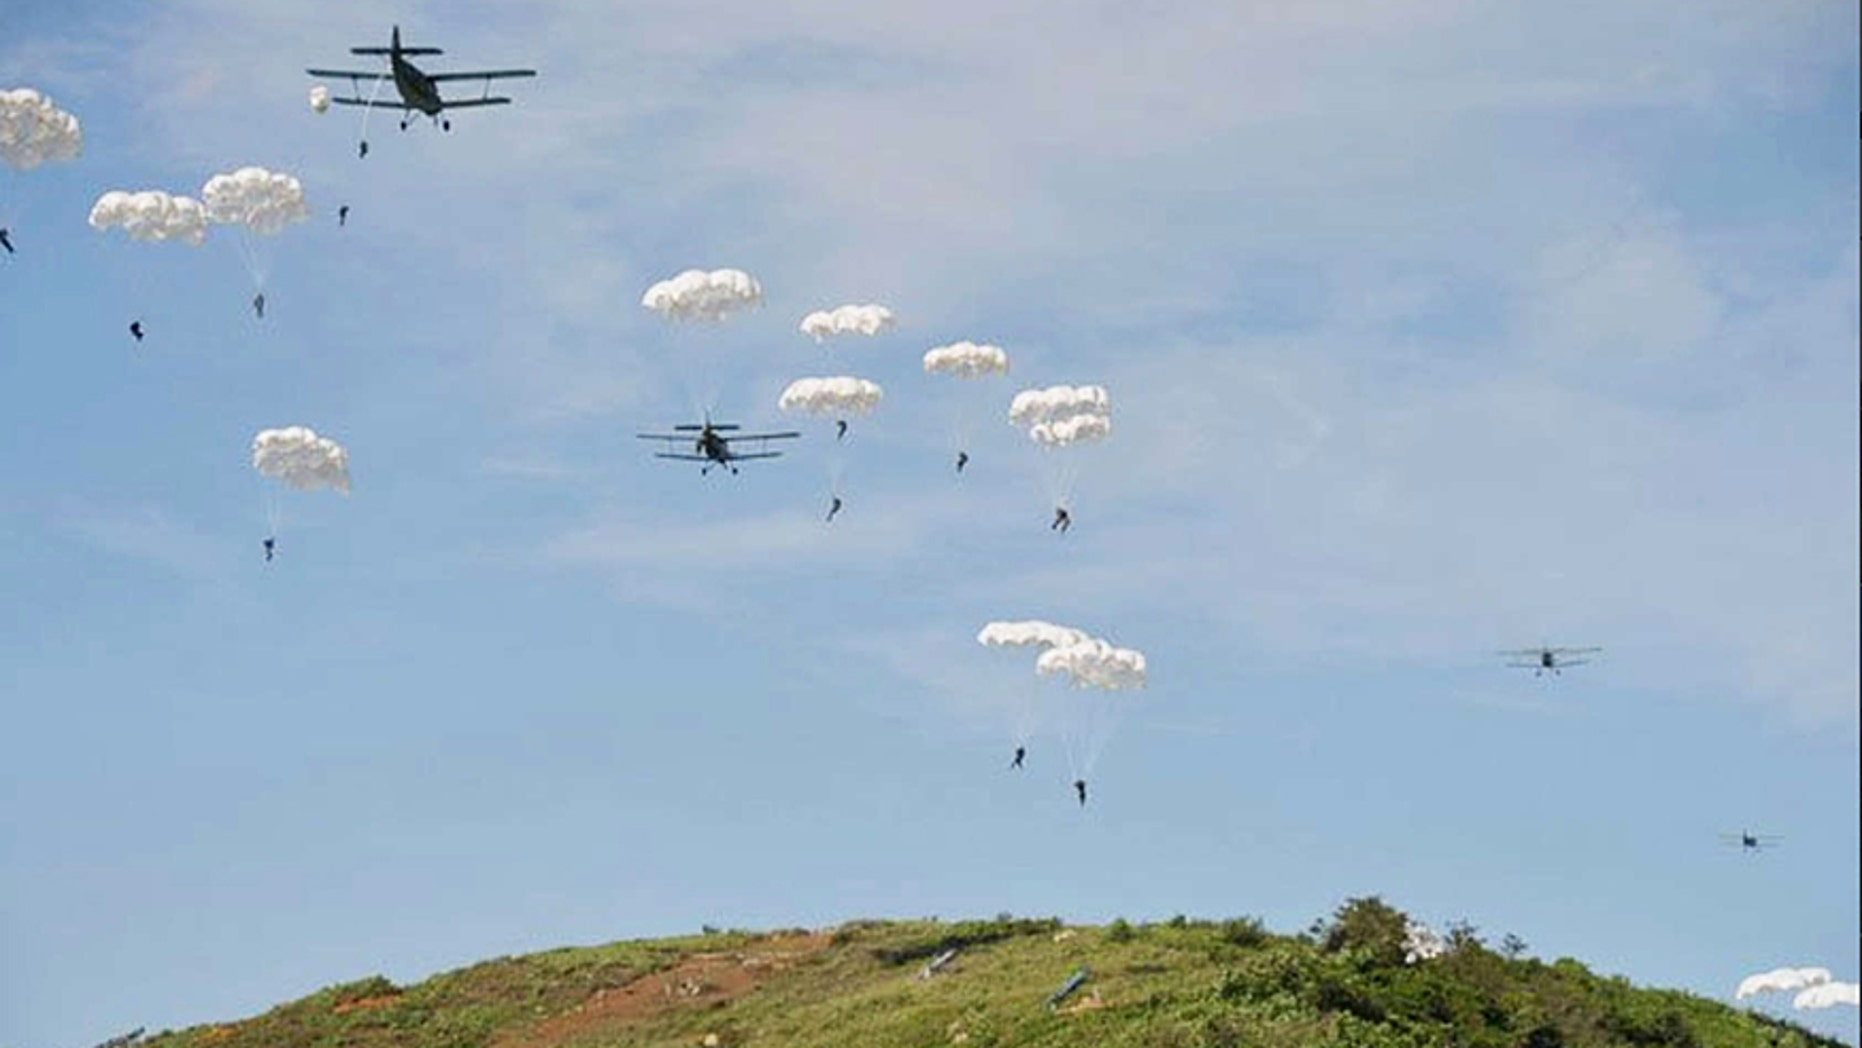 North Korea paratroopers jump out of two Antonov An-2 transport aircrafts.